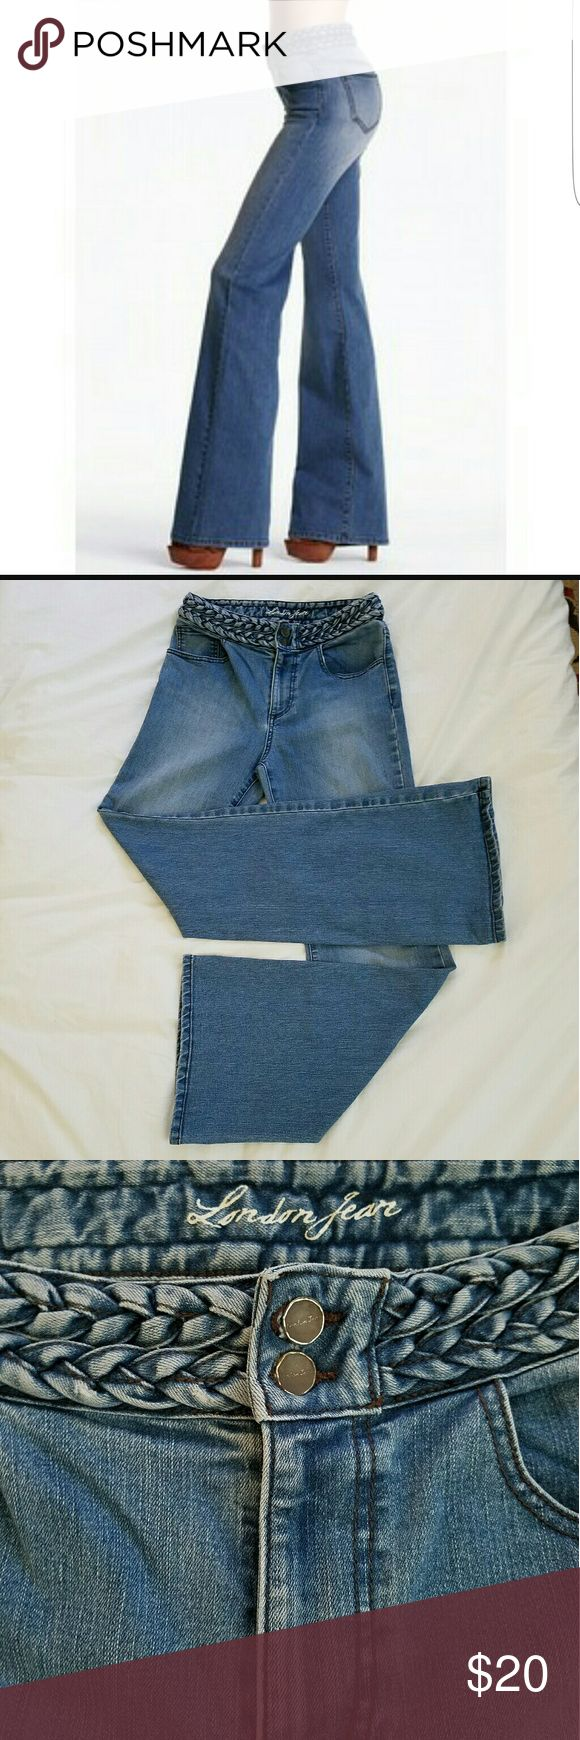 VS London Jeans These light wash jeans feature a high braided waist, a wider leg bottom, and have a 32 inch inseam. London Jean by Victoria's Secret made of 76% cotton, 22% polyester, and 2% elastane. They are in great preworn condition, and look amazing and slimming on! Jeans Flare & Wide Leg